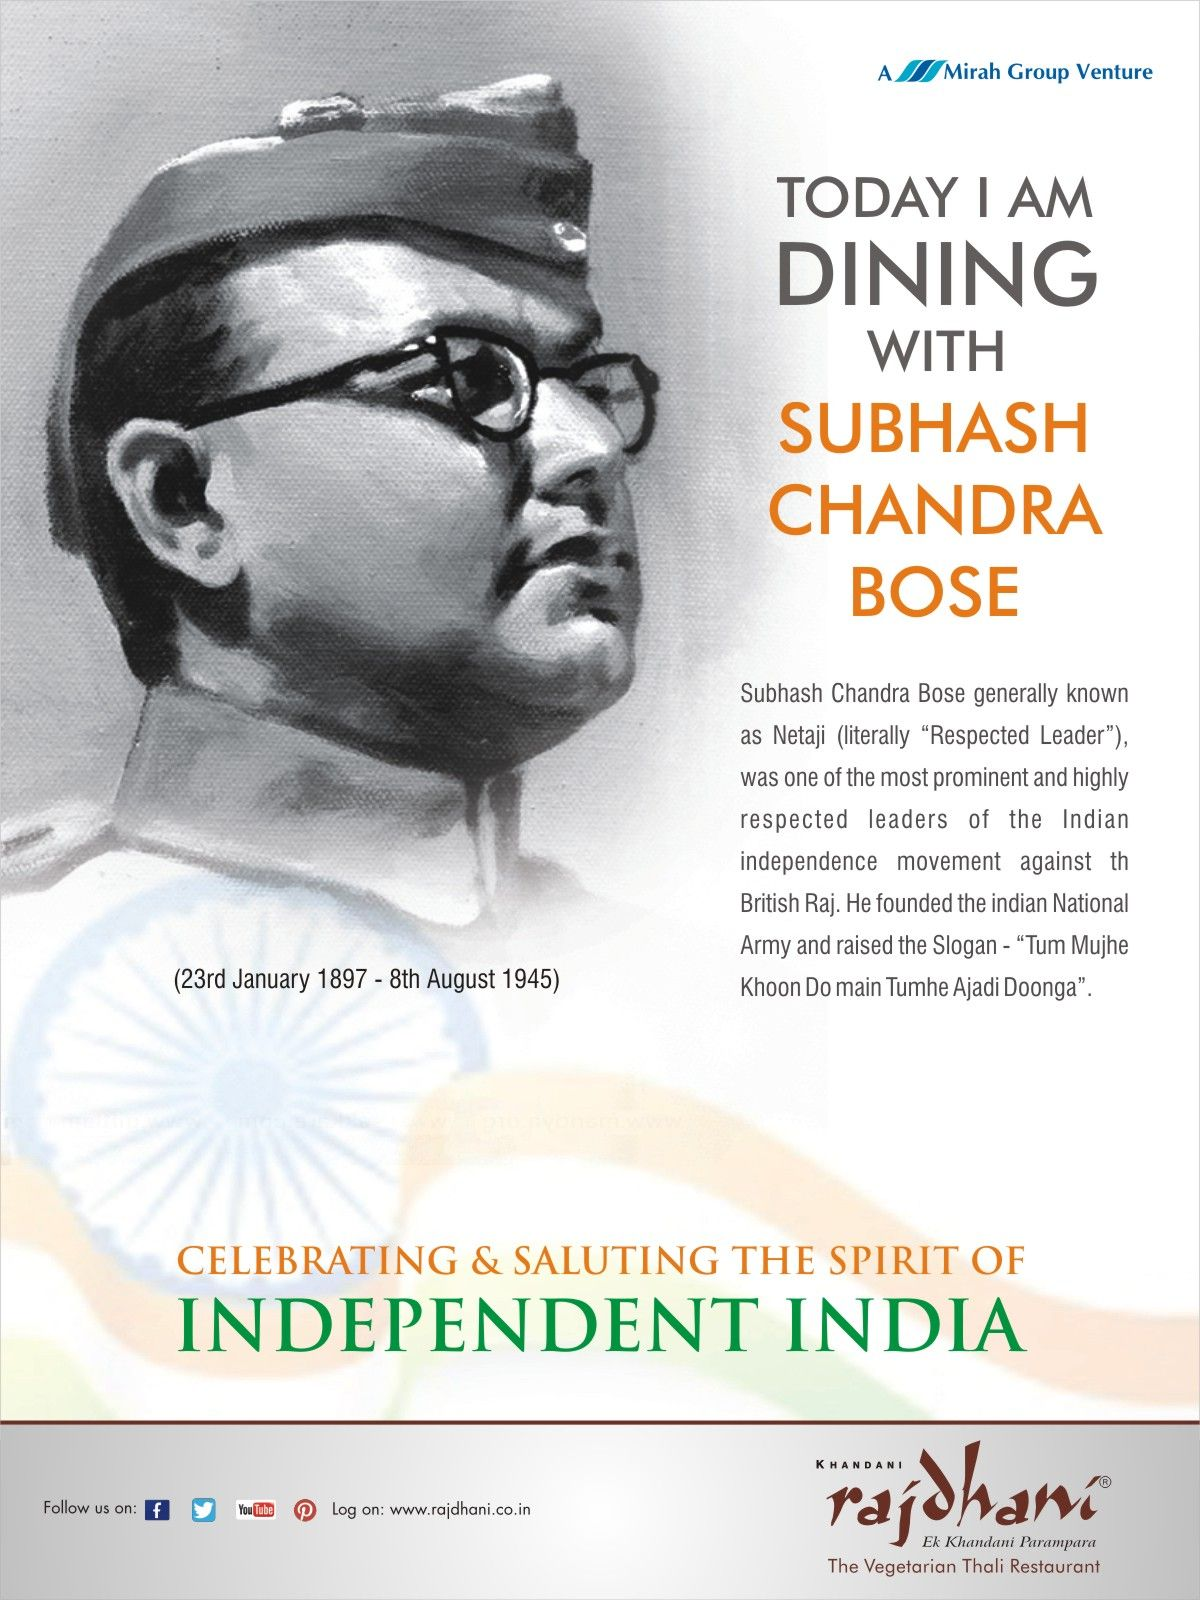 Subhash Chandra Bose generally known as Netaji, was one of